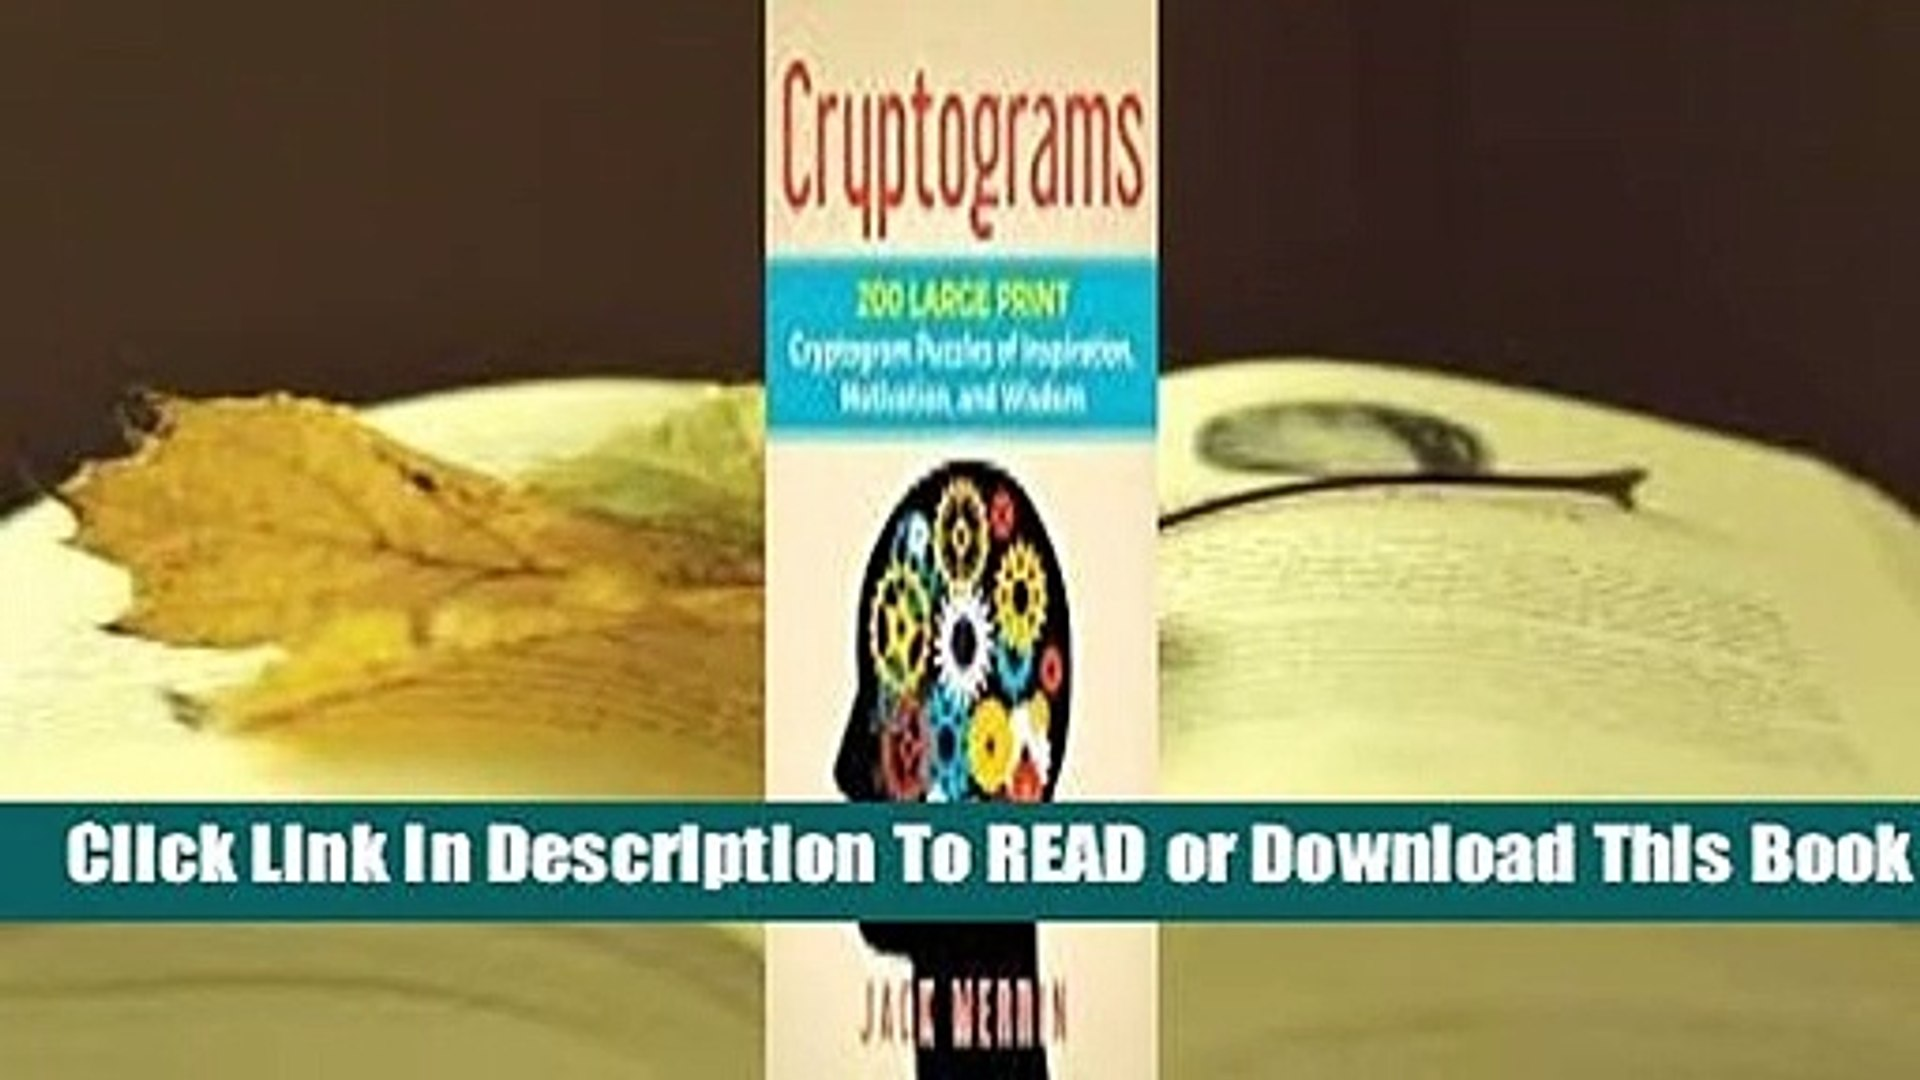 About For Books Cryptograms: 200 LARGE PRINT Cryptogram Puzzles of  Inspiration, Motivation, and